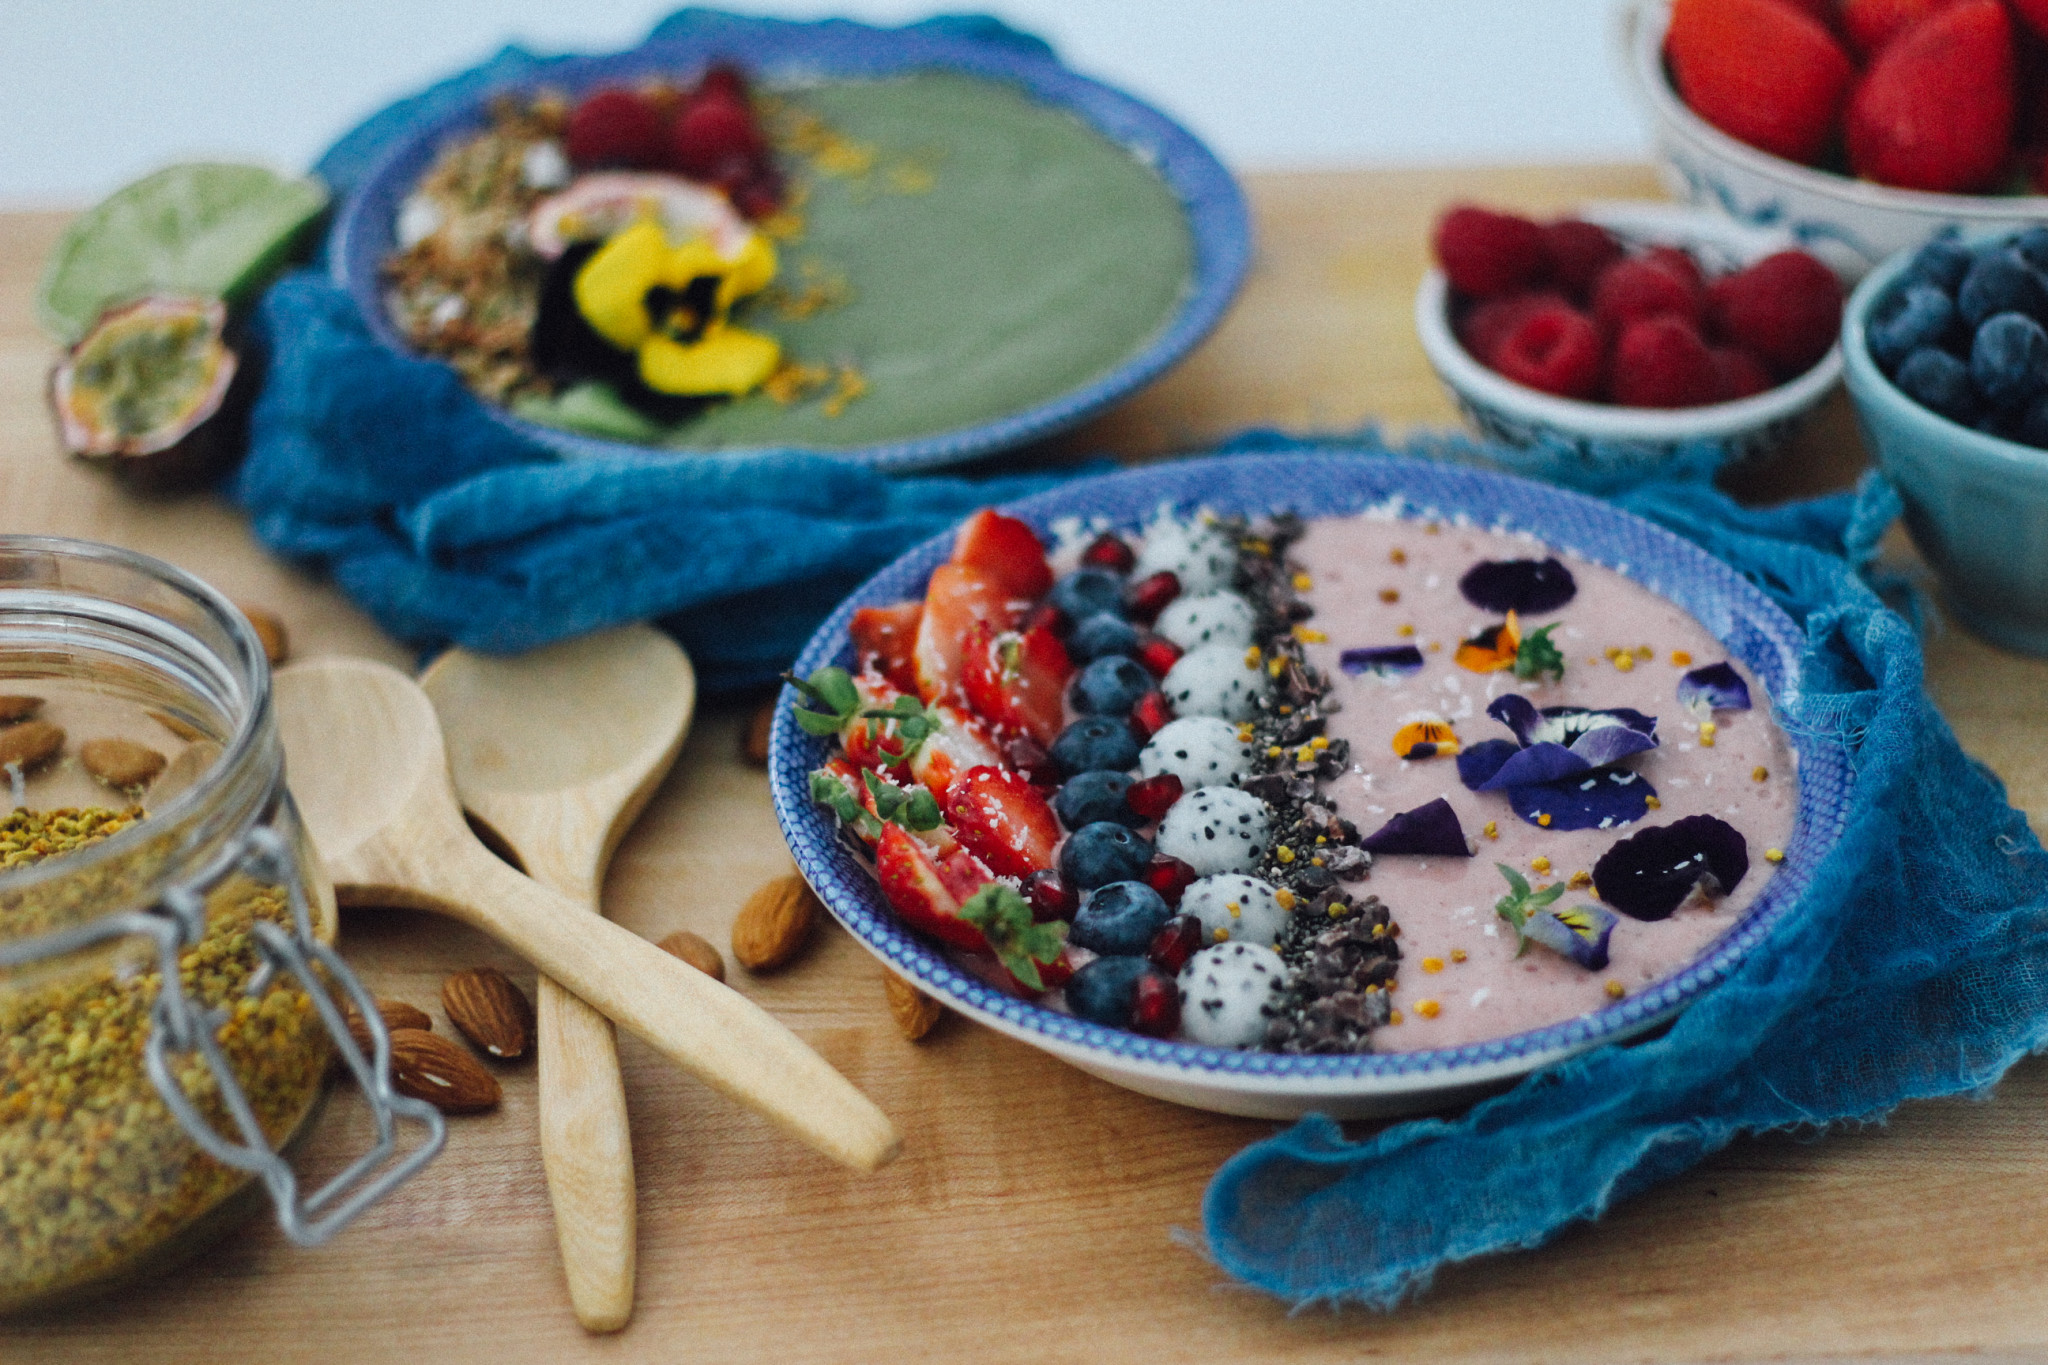 How-to-make-a-breakfast-smoothie-bowl.jpg